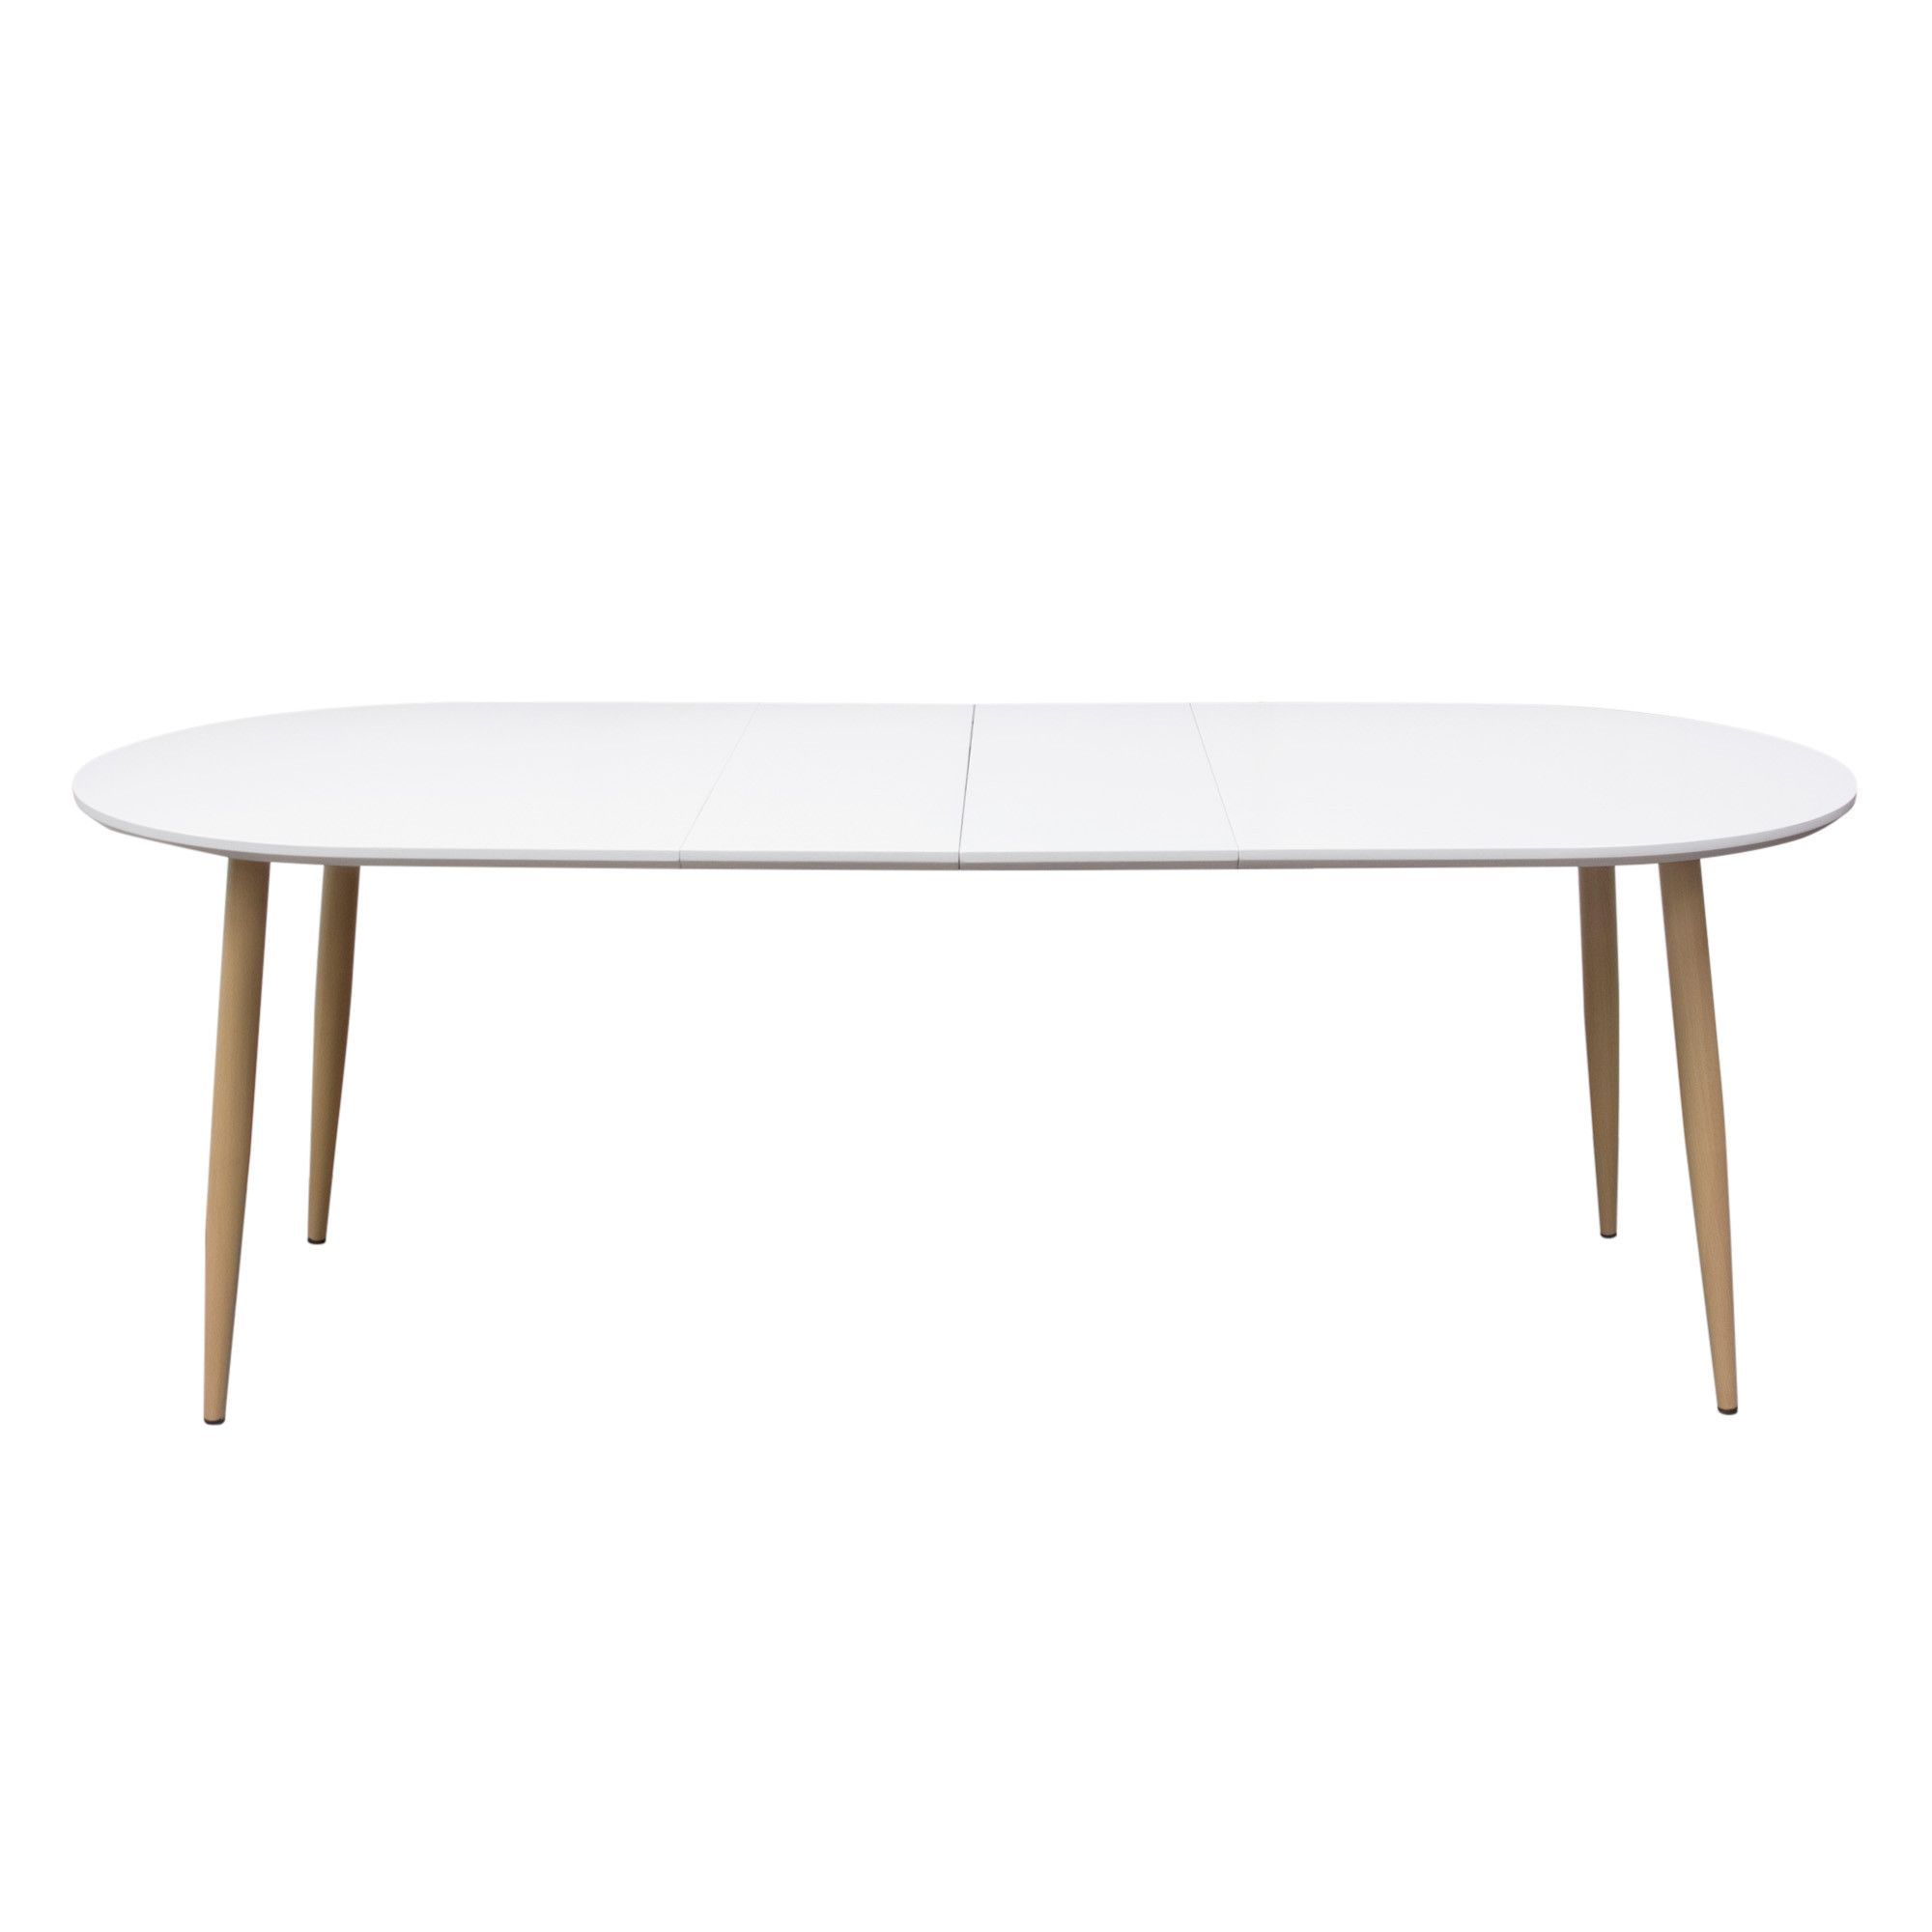 Ion Oval Extension Dining Table with White Top amp Metal  : a179a1292296d44c49c9c81546a4613d from www.pinterest.com size 2000 x 2000 jpeg 49kB